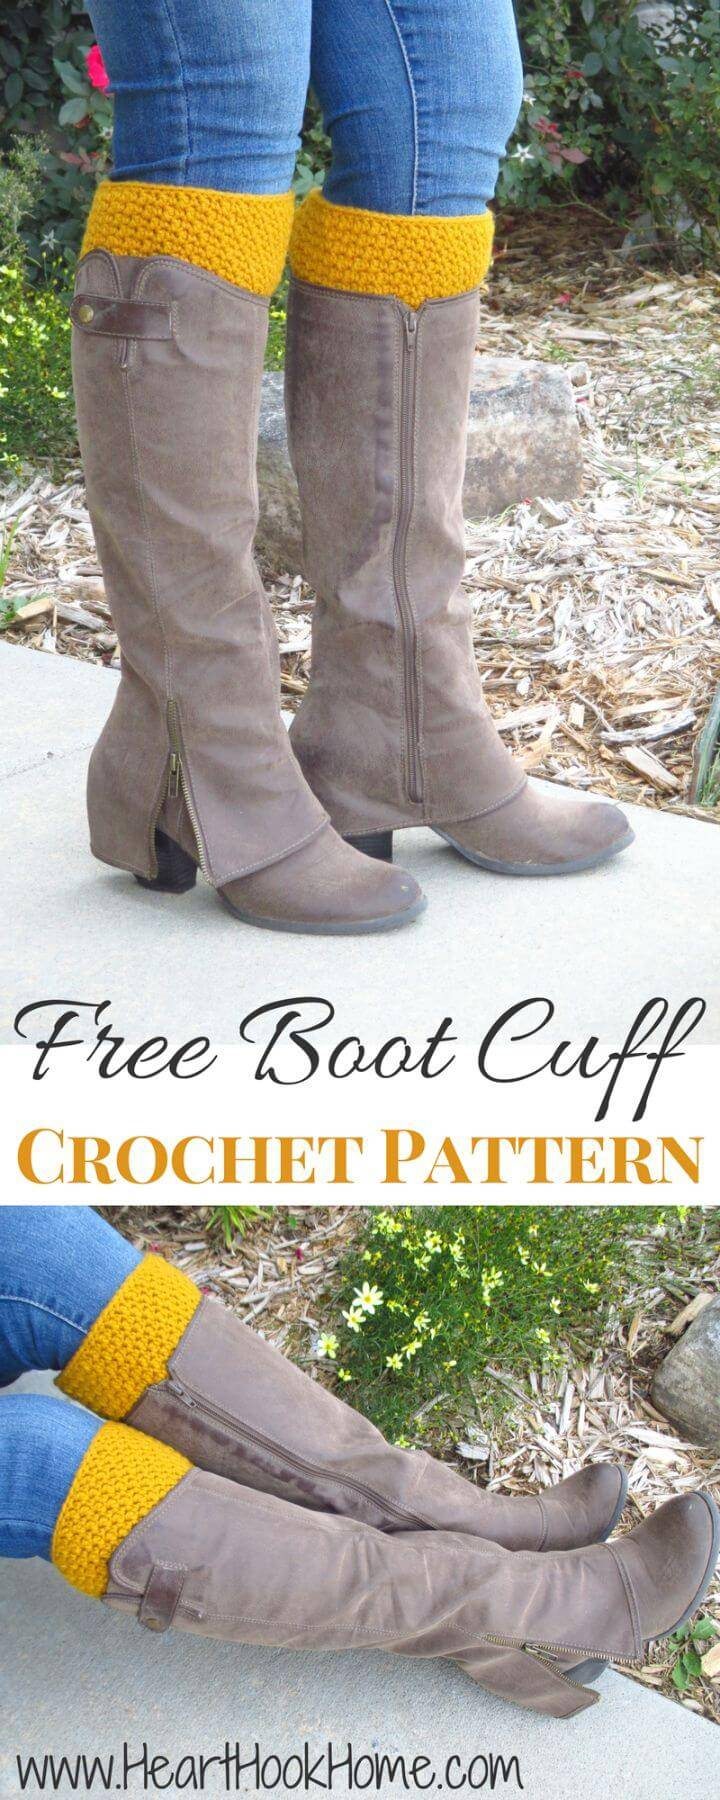 Free Crochet Reversible Boot Cuffs Pattern